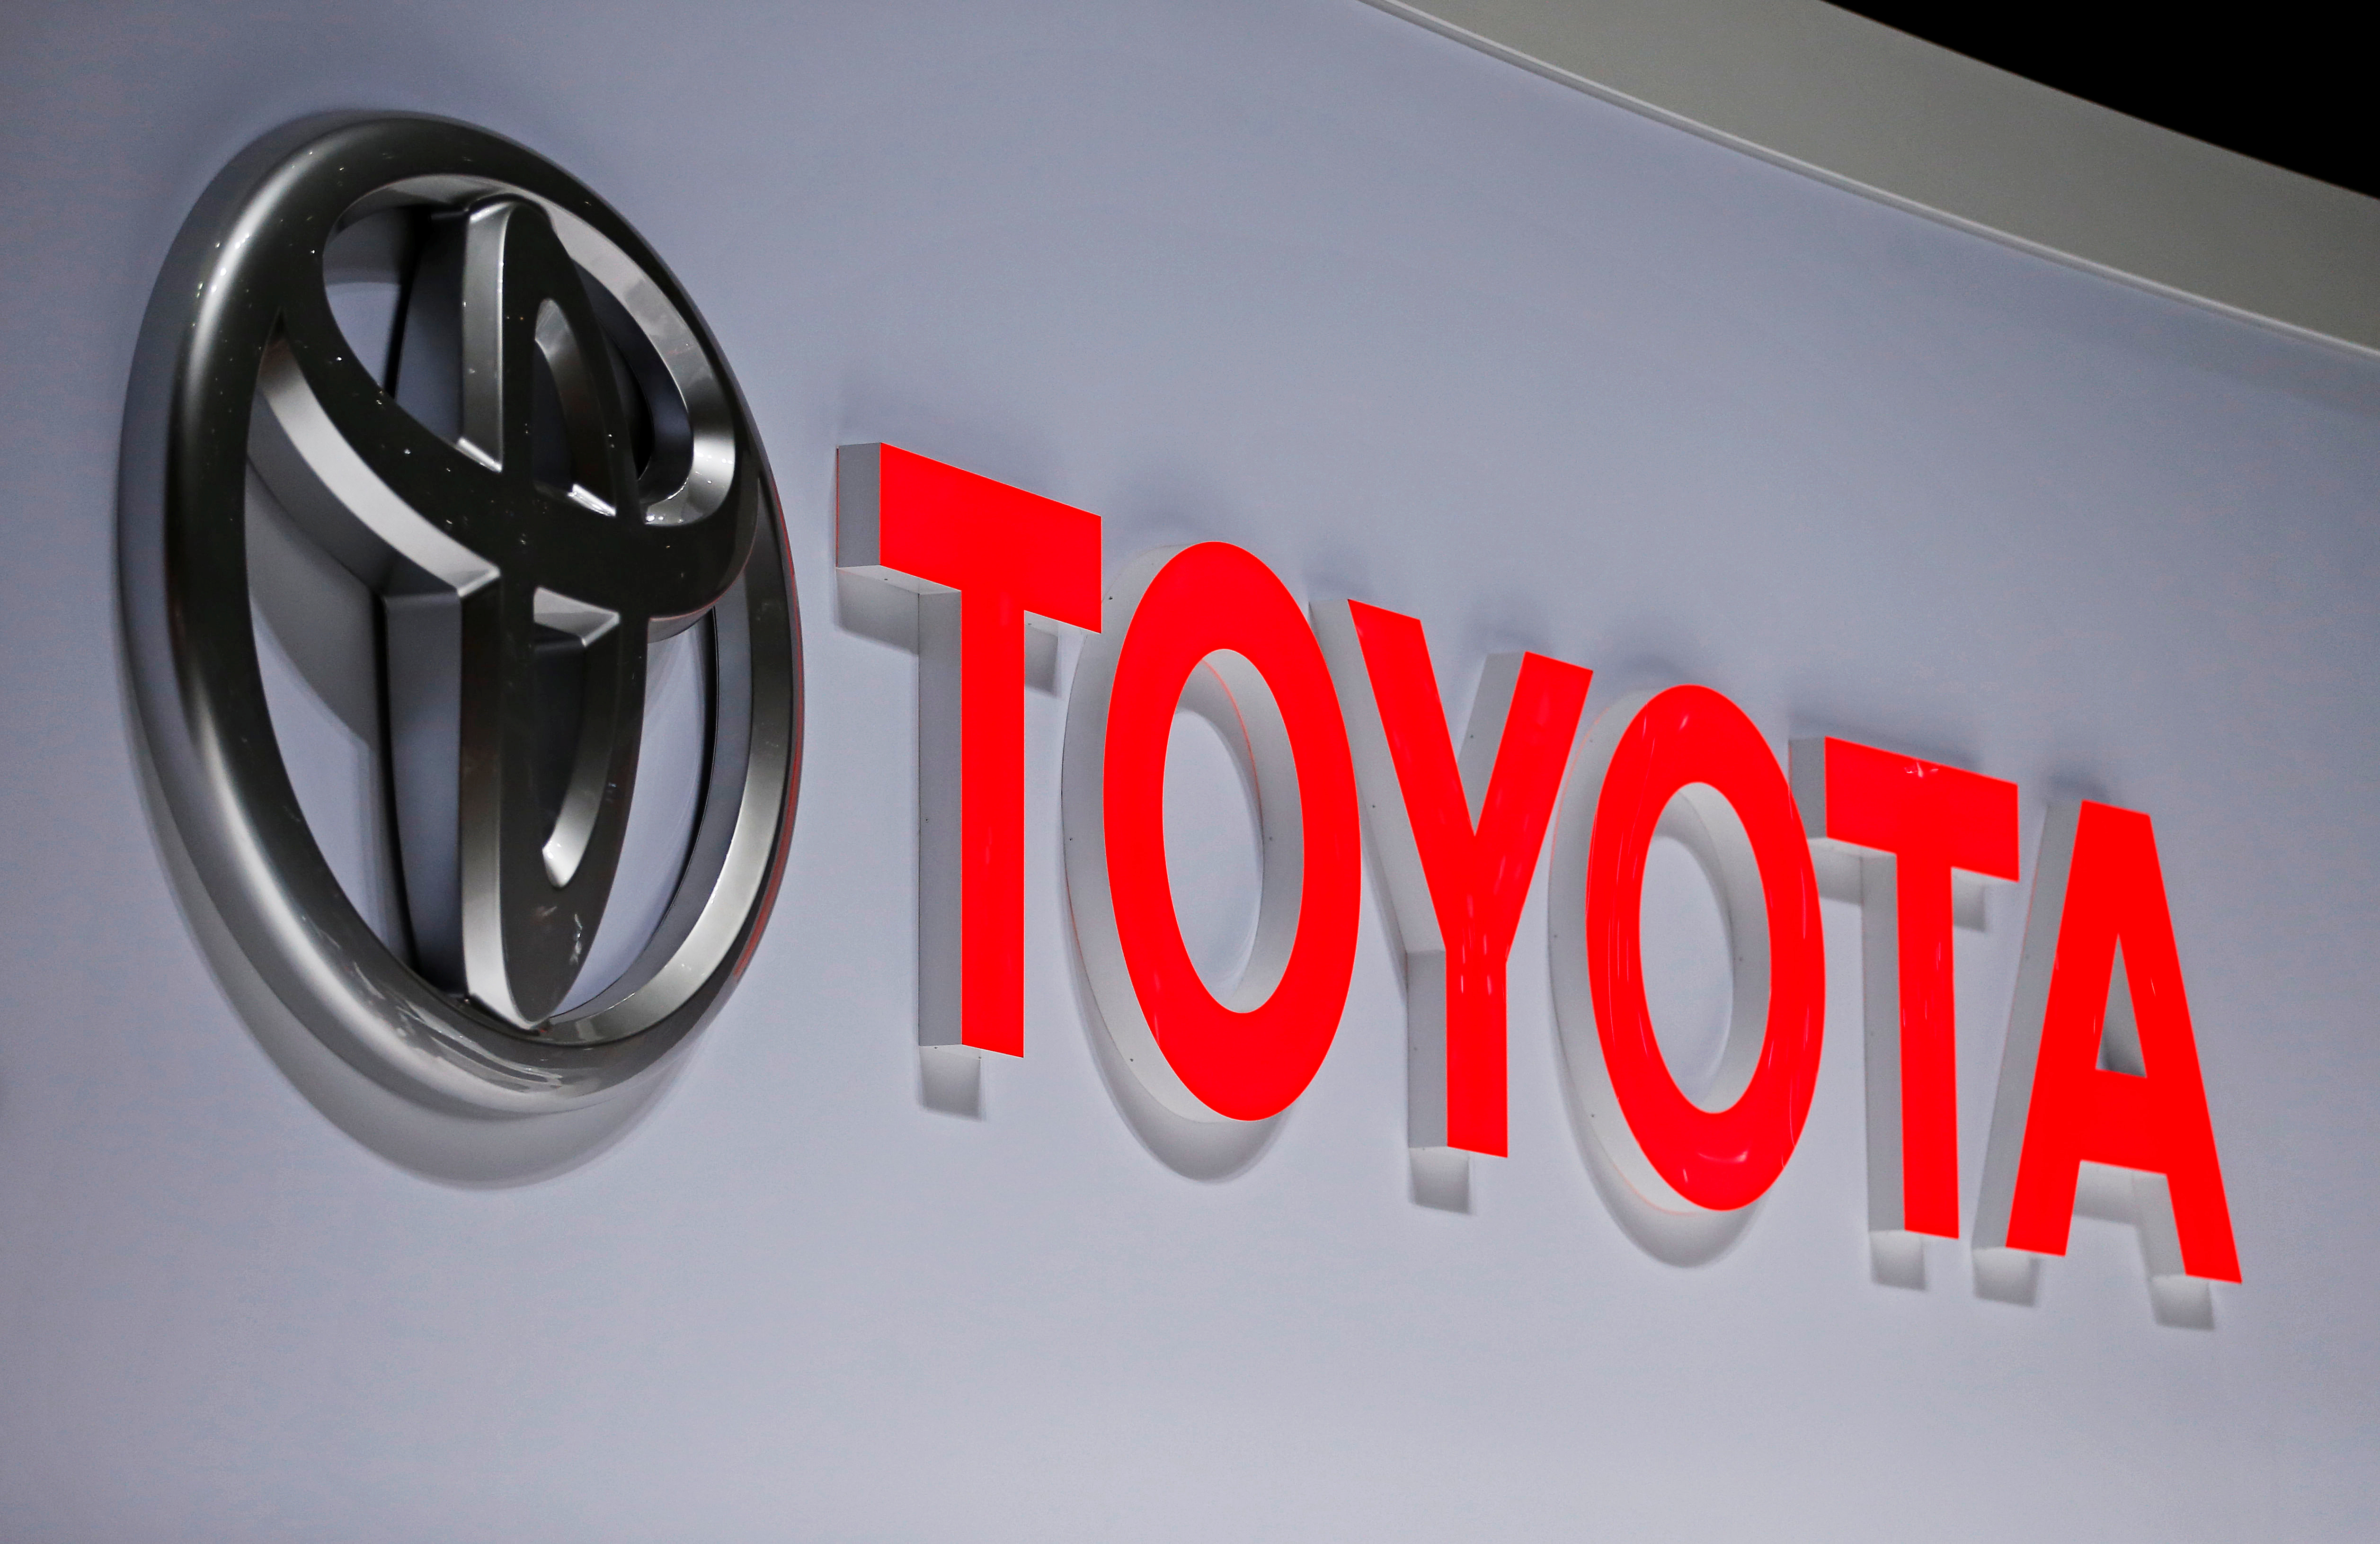 A Toyota logo is displayed at the 89th Geneva International Motor Show in Geneva, Switzerland March 5, 2019. REUTERS/Pierre Albouy